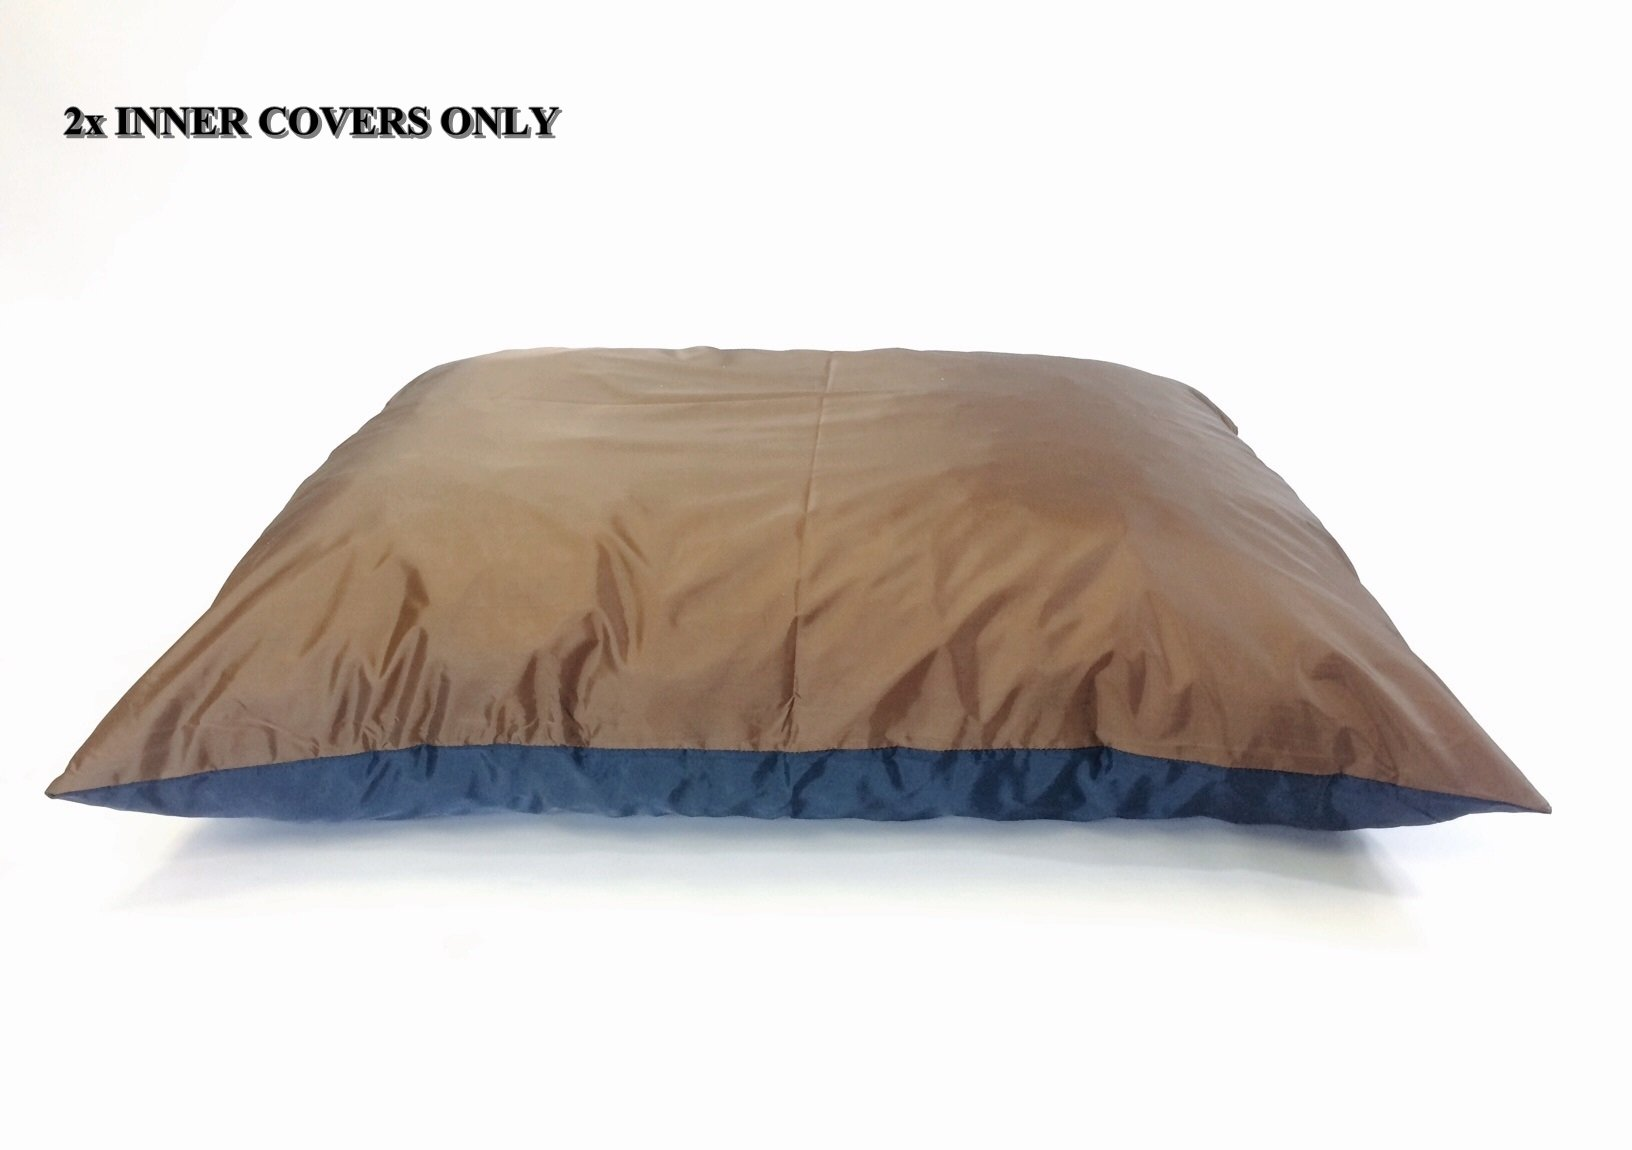 American Comfort Warehouse 2 Quantity of 47''x29'' Large size Top Brown Full Waterproof Bottom Blue Breathable Water Resistant Flat Dog Bed Liner - Internal Cover Case